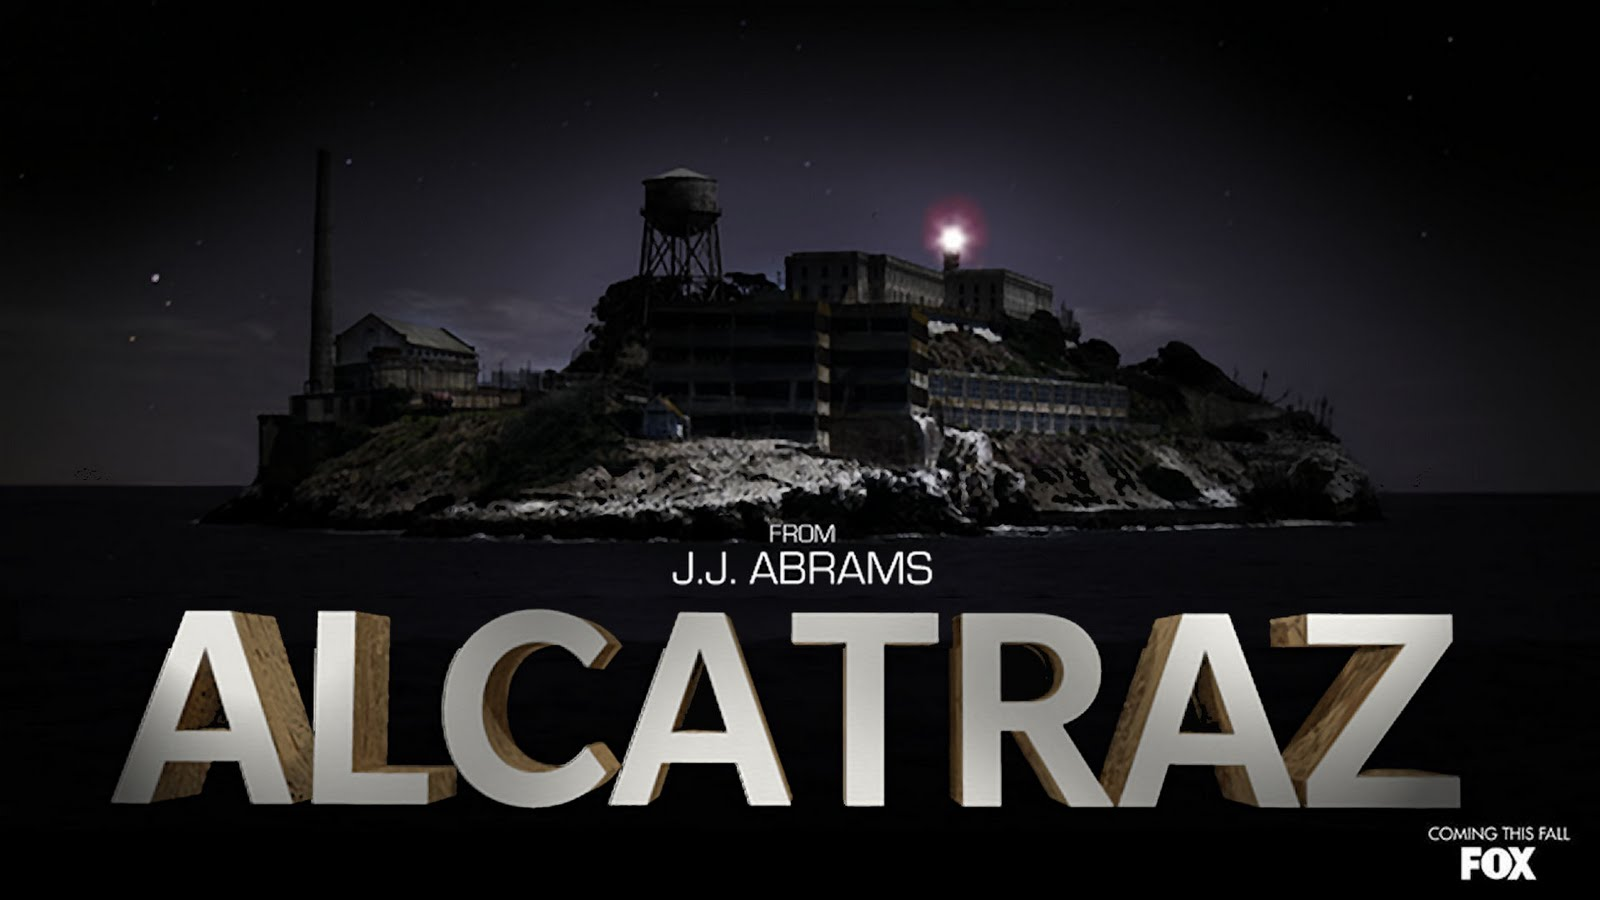 Alcatraz Poster And Wallpapers